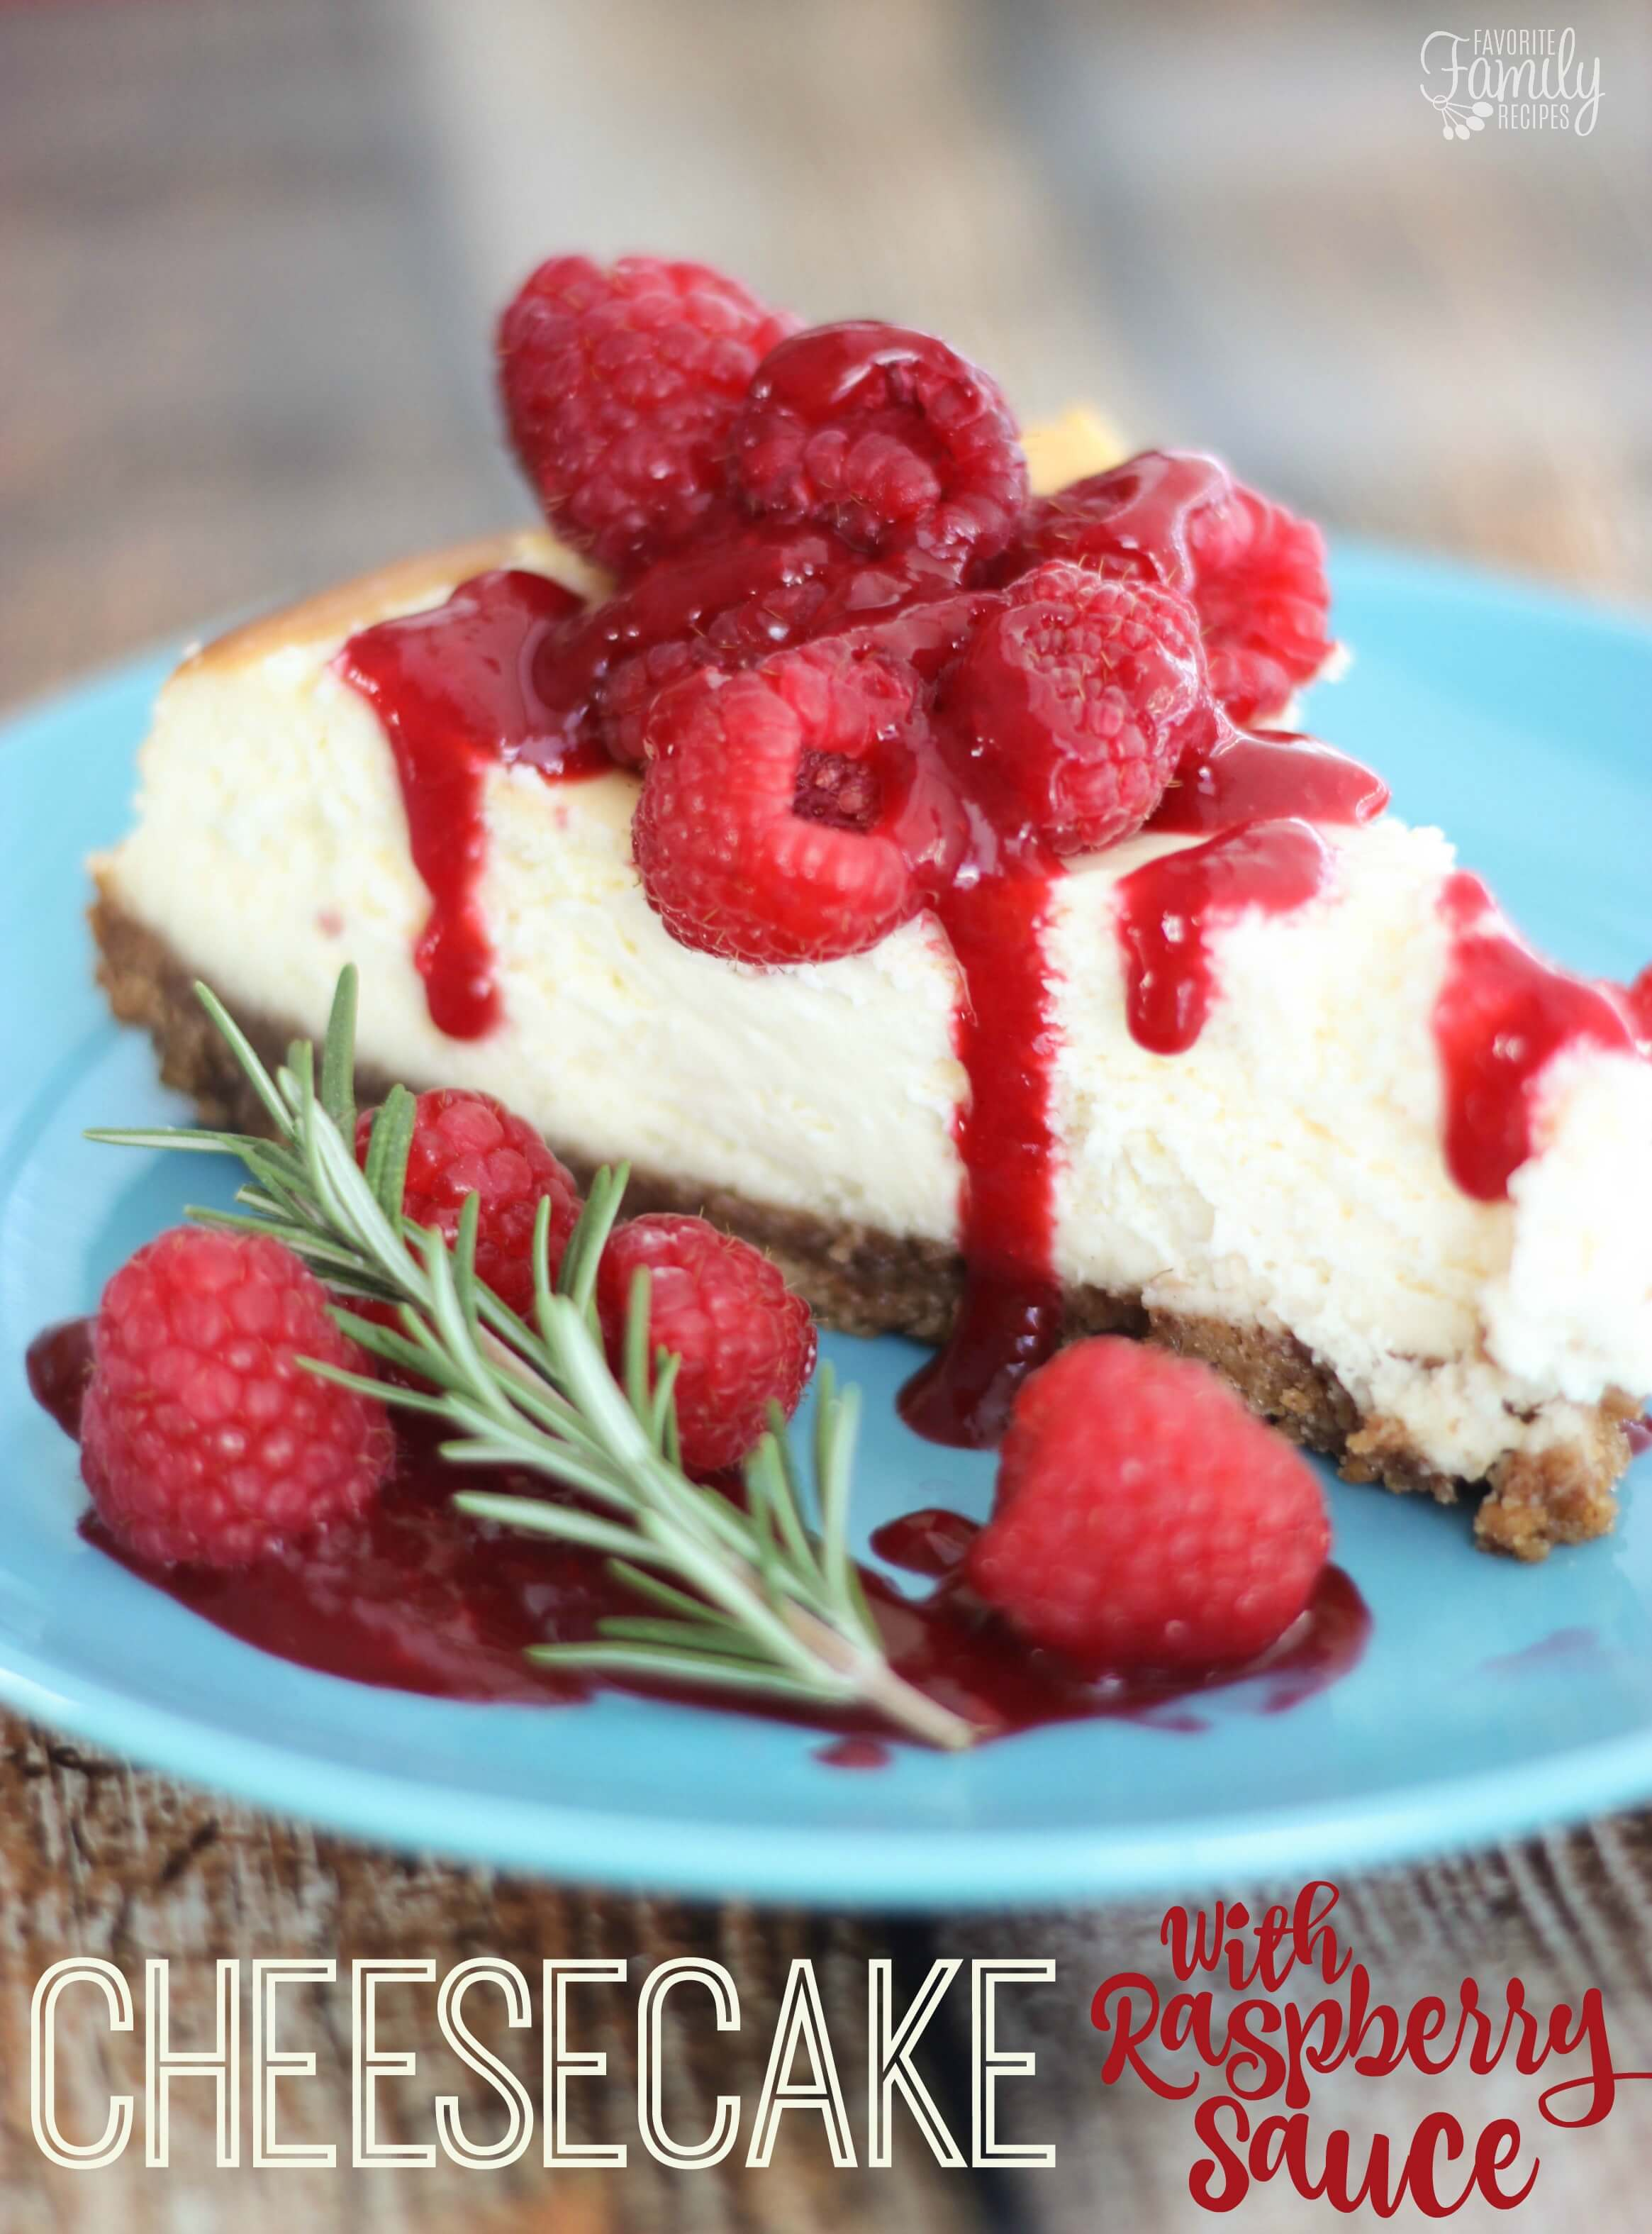 Cheesecake with Raspberry Sauce -Favorite Family Recipes